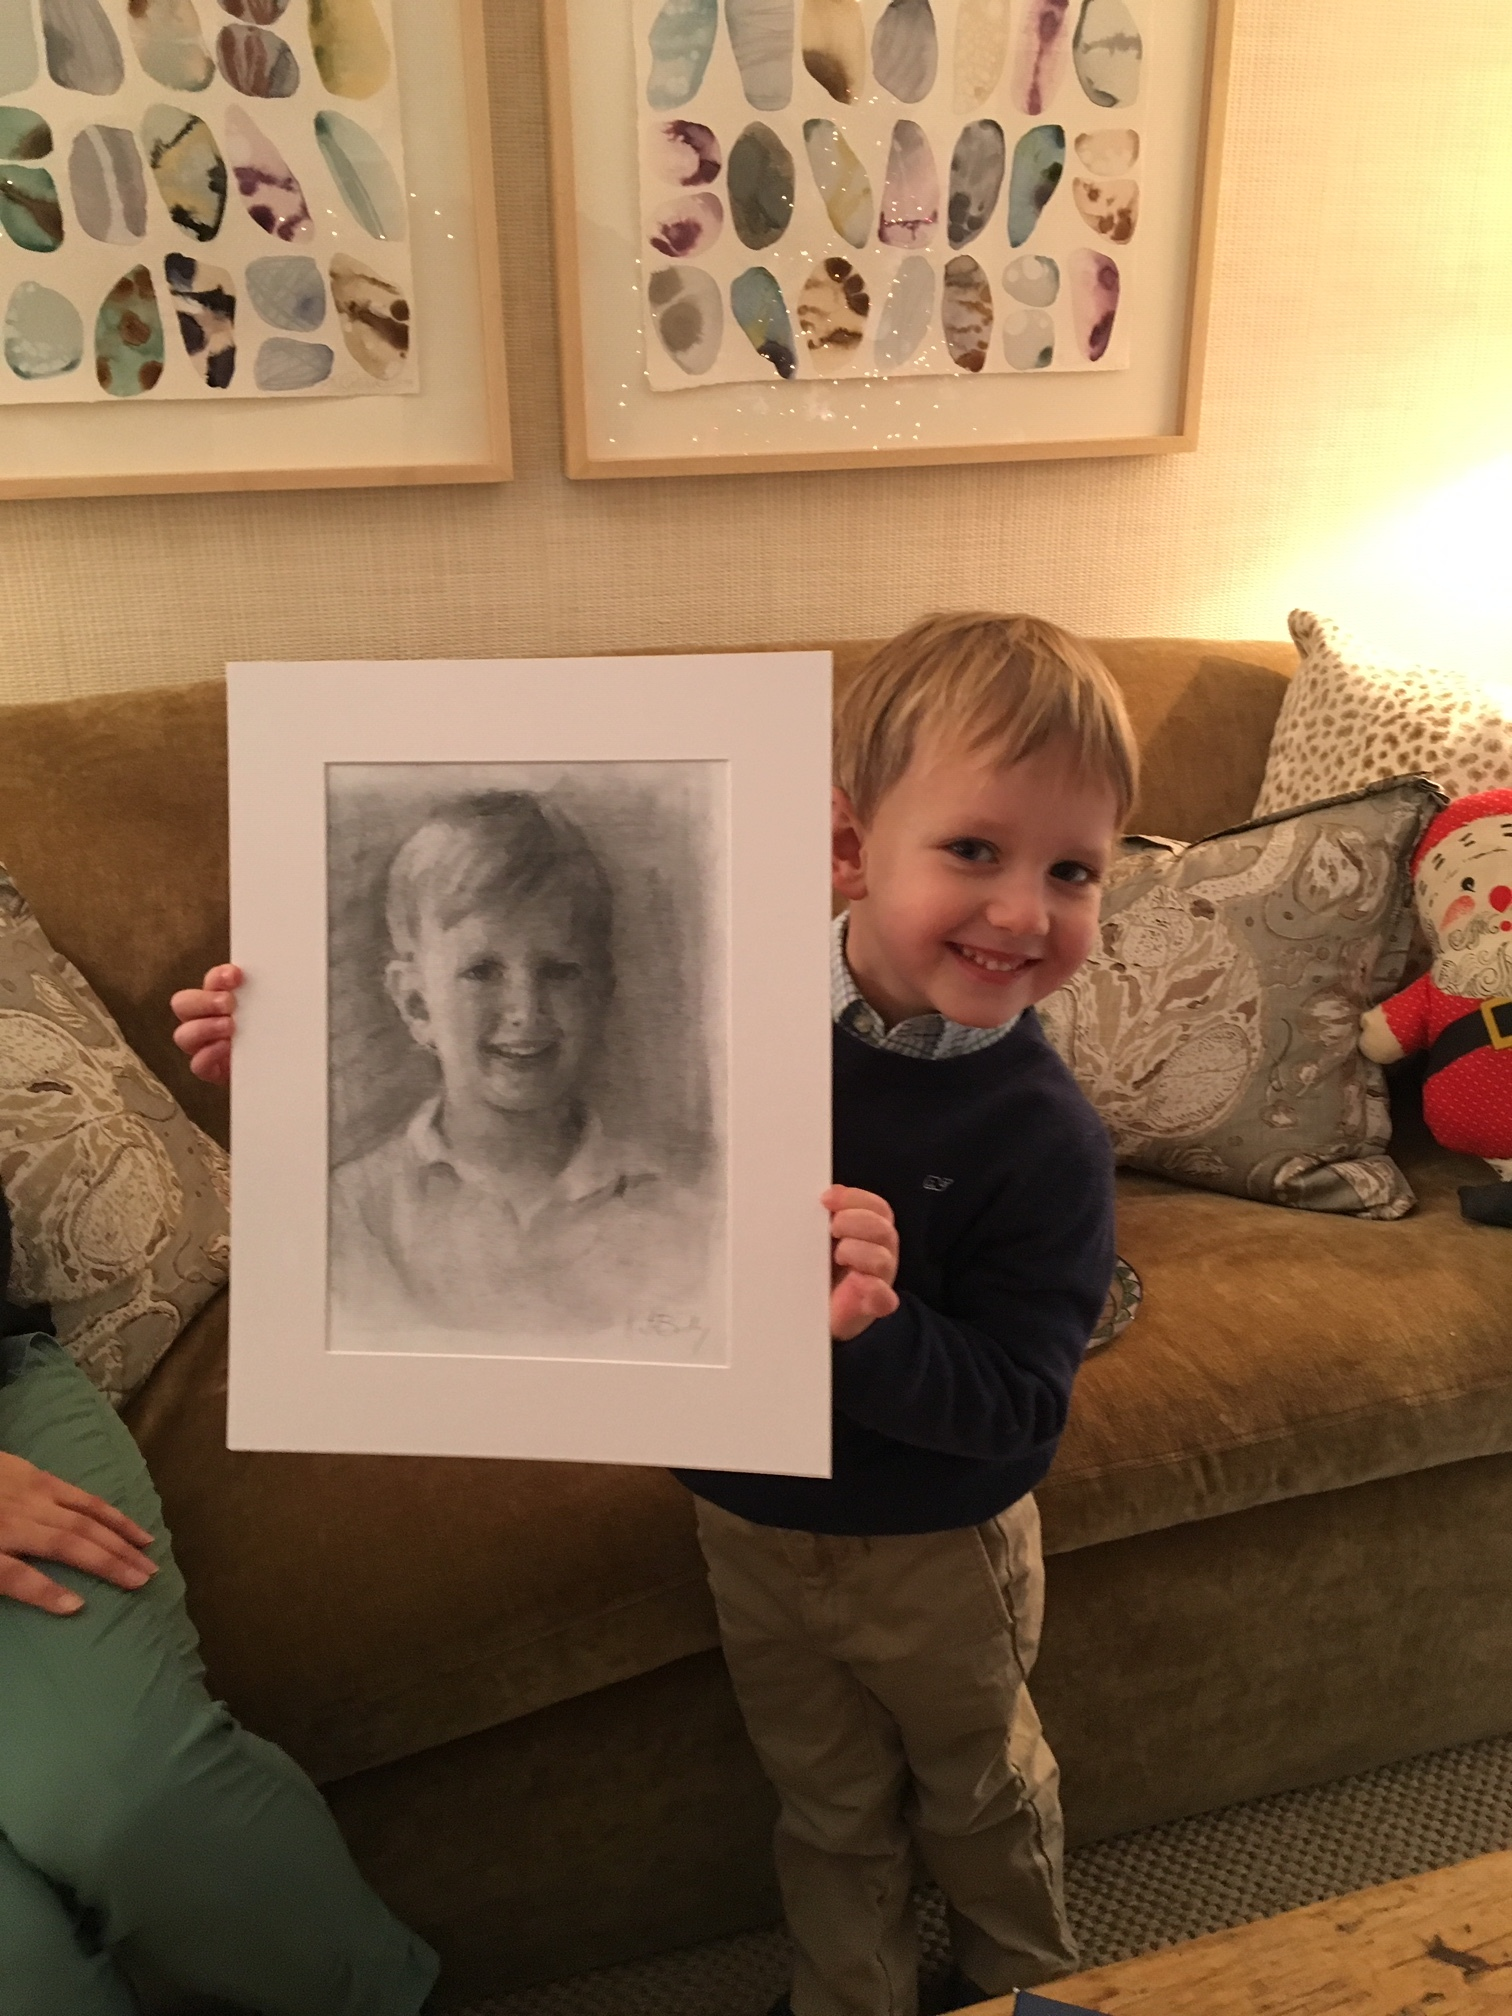 James Dorman, age 5, charcoal on paper